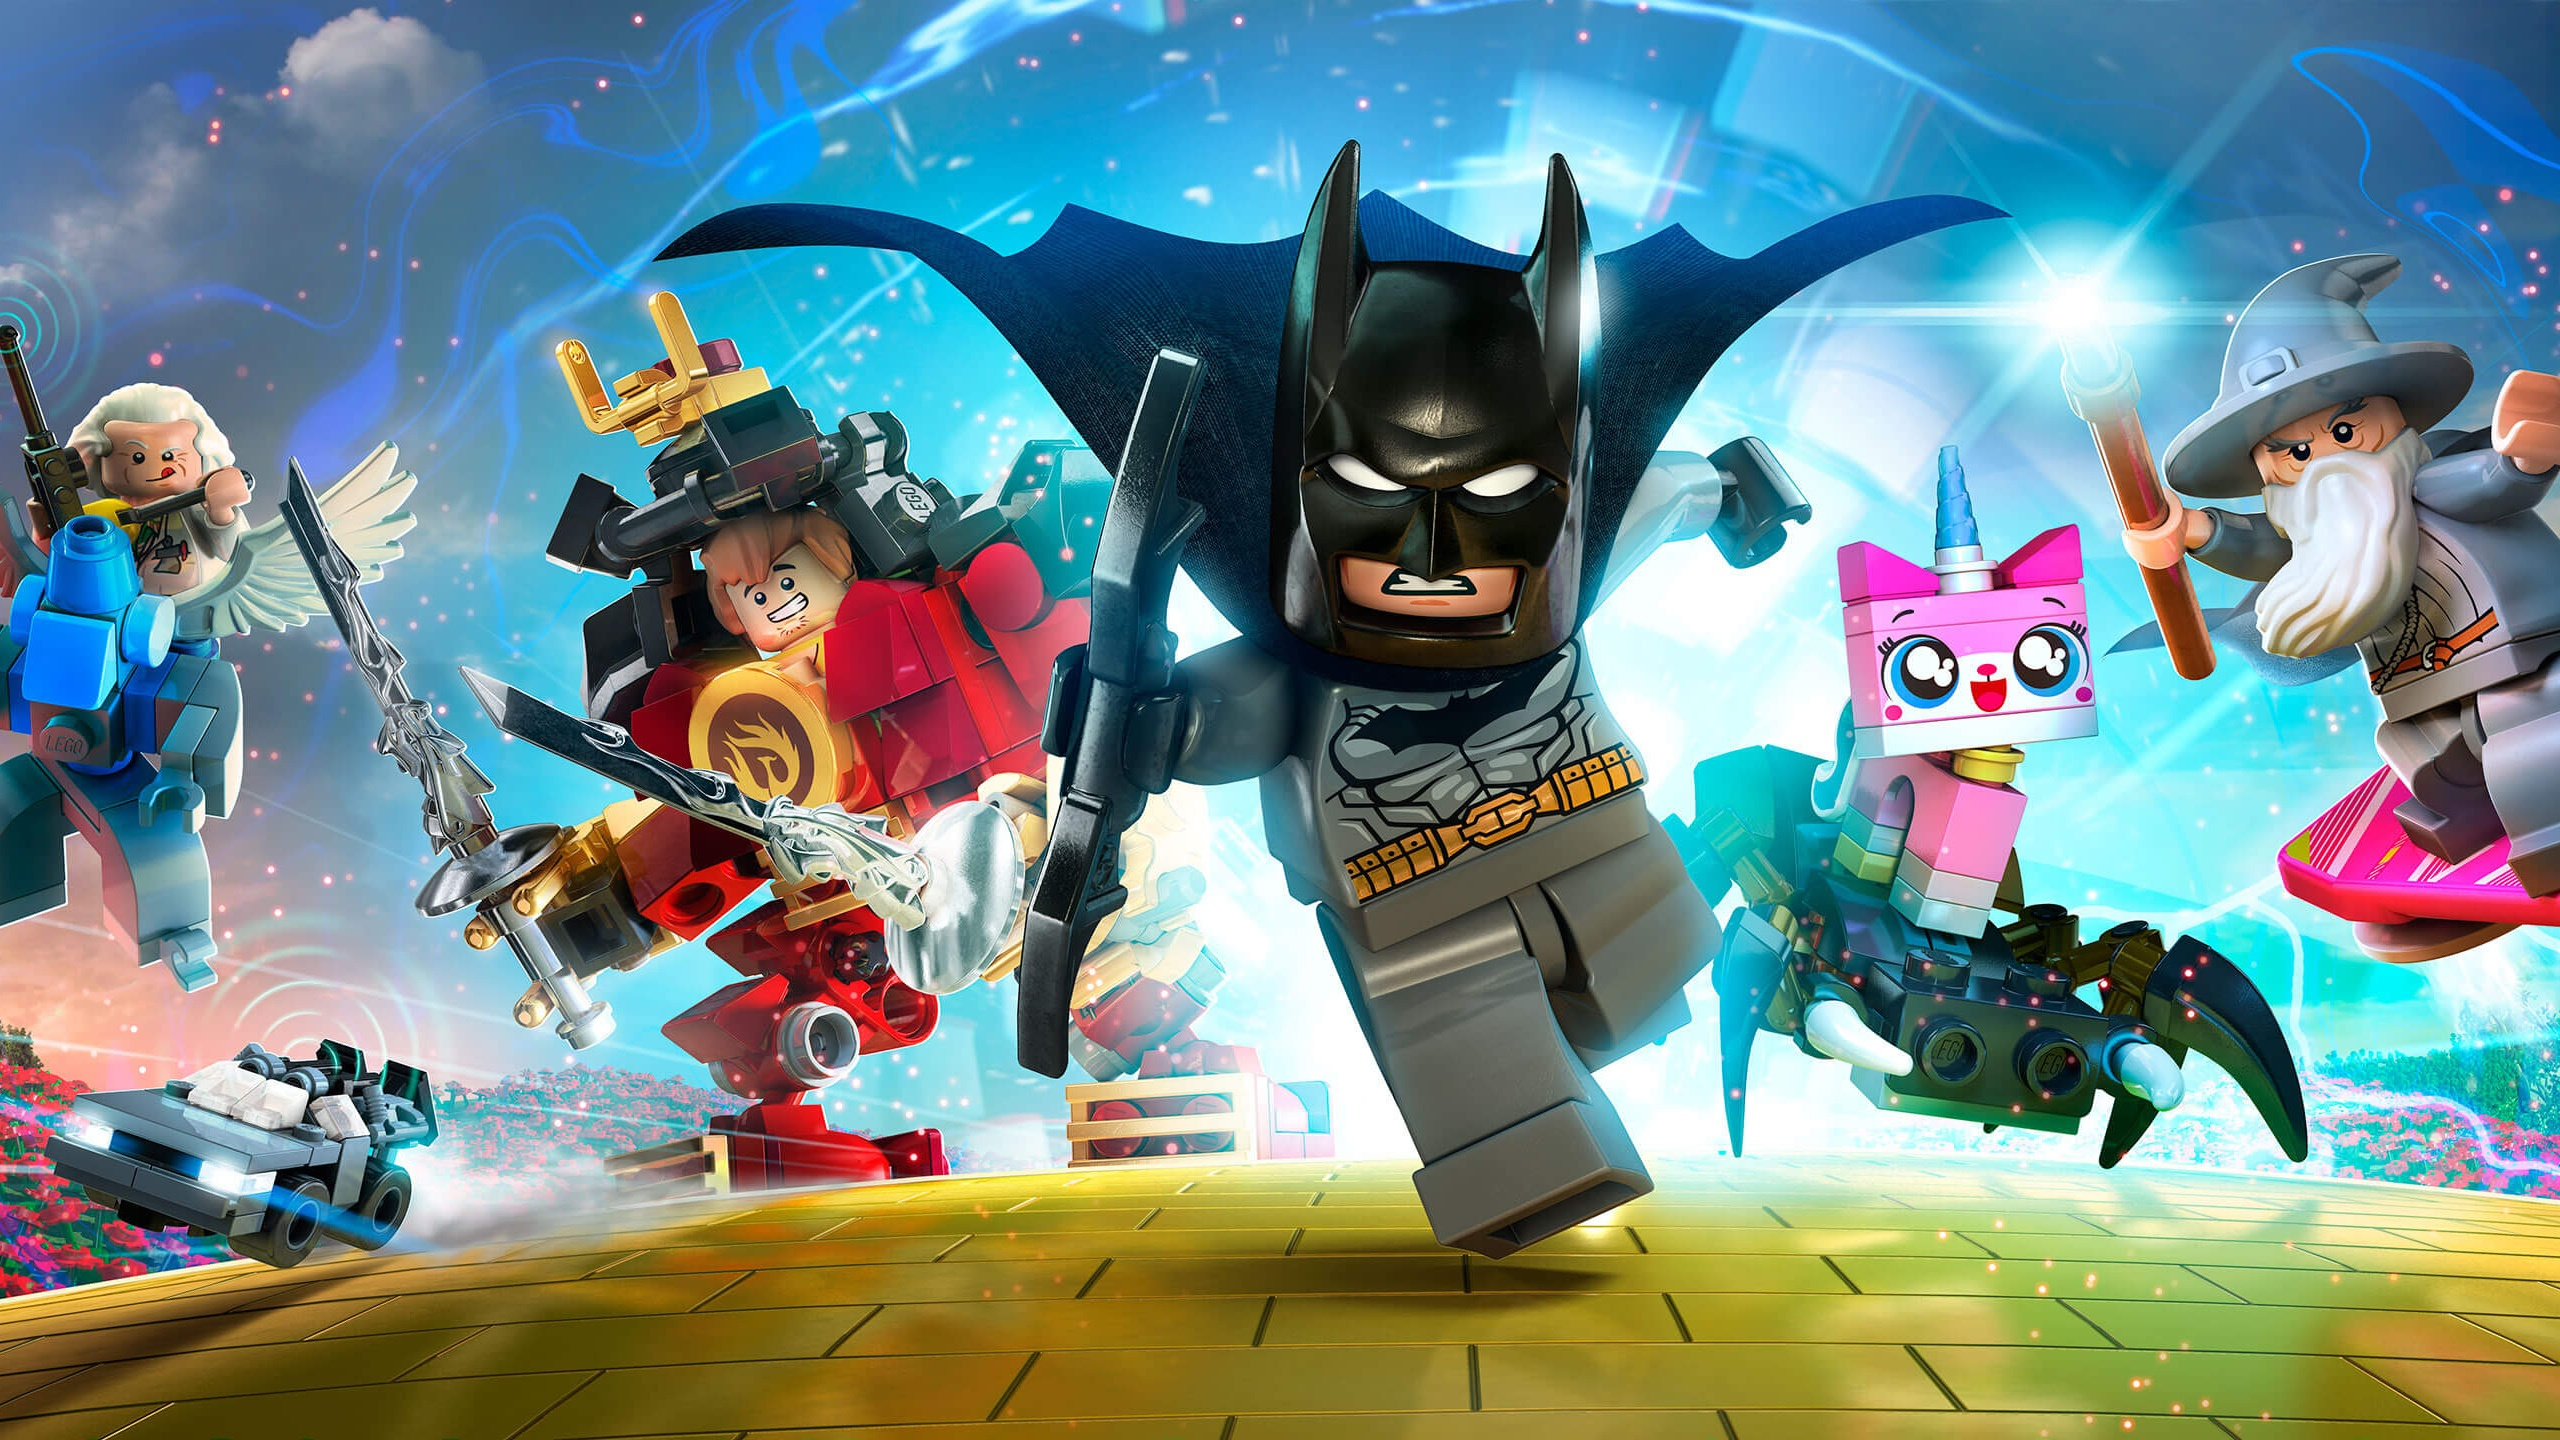 Lego Dimensions 2015 Game Wallpapers In Jpg Format For Free Download